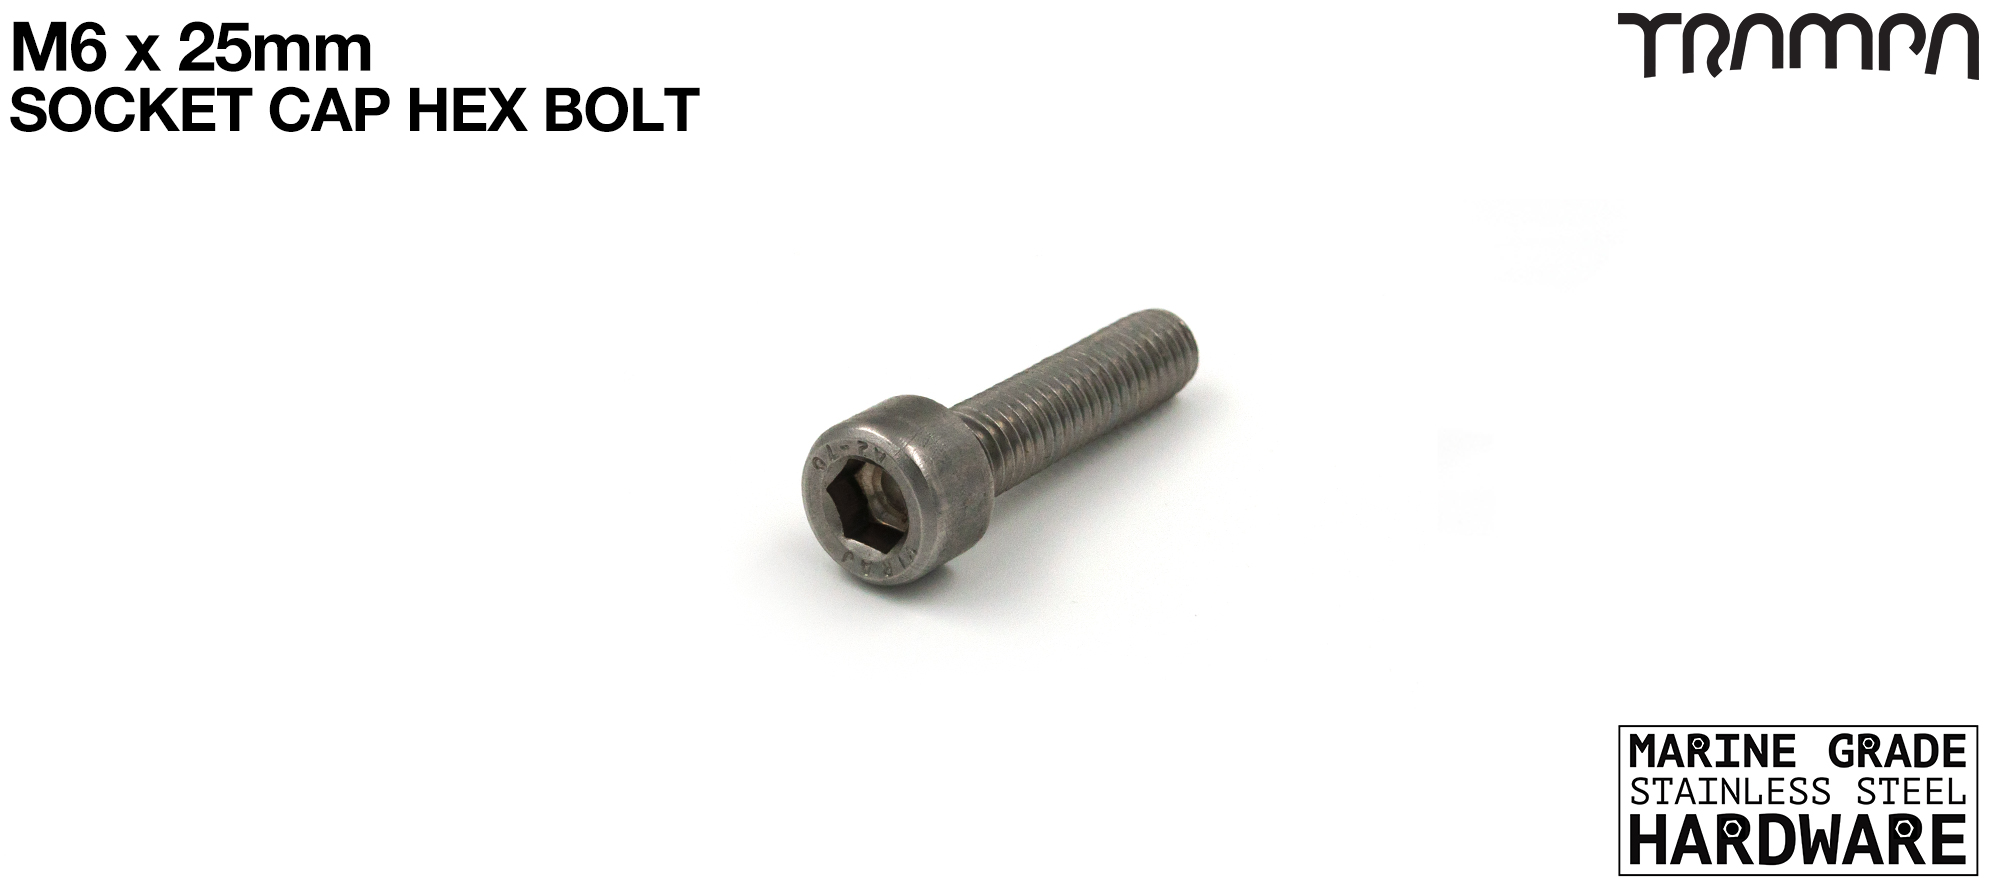 M6 x 25mm Socket Capped Bolt for primo hub - Marine Grade Stainless steel